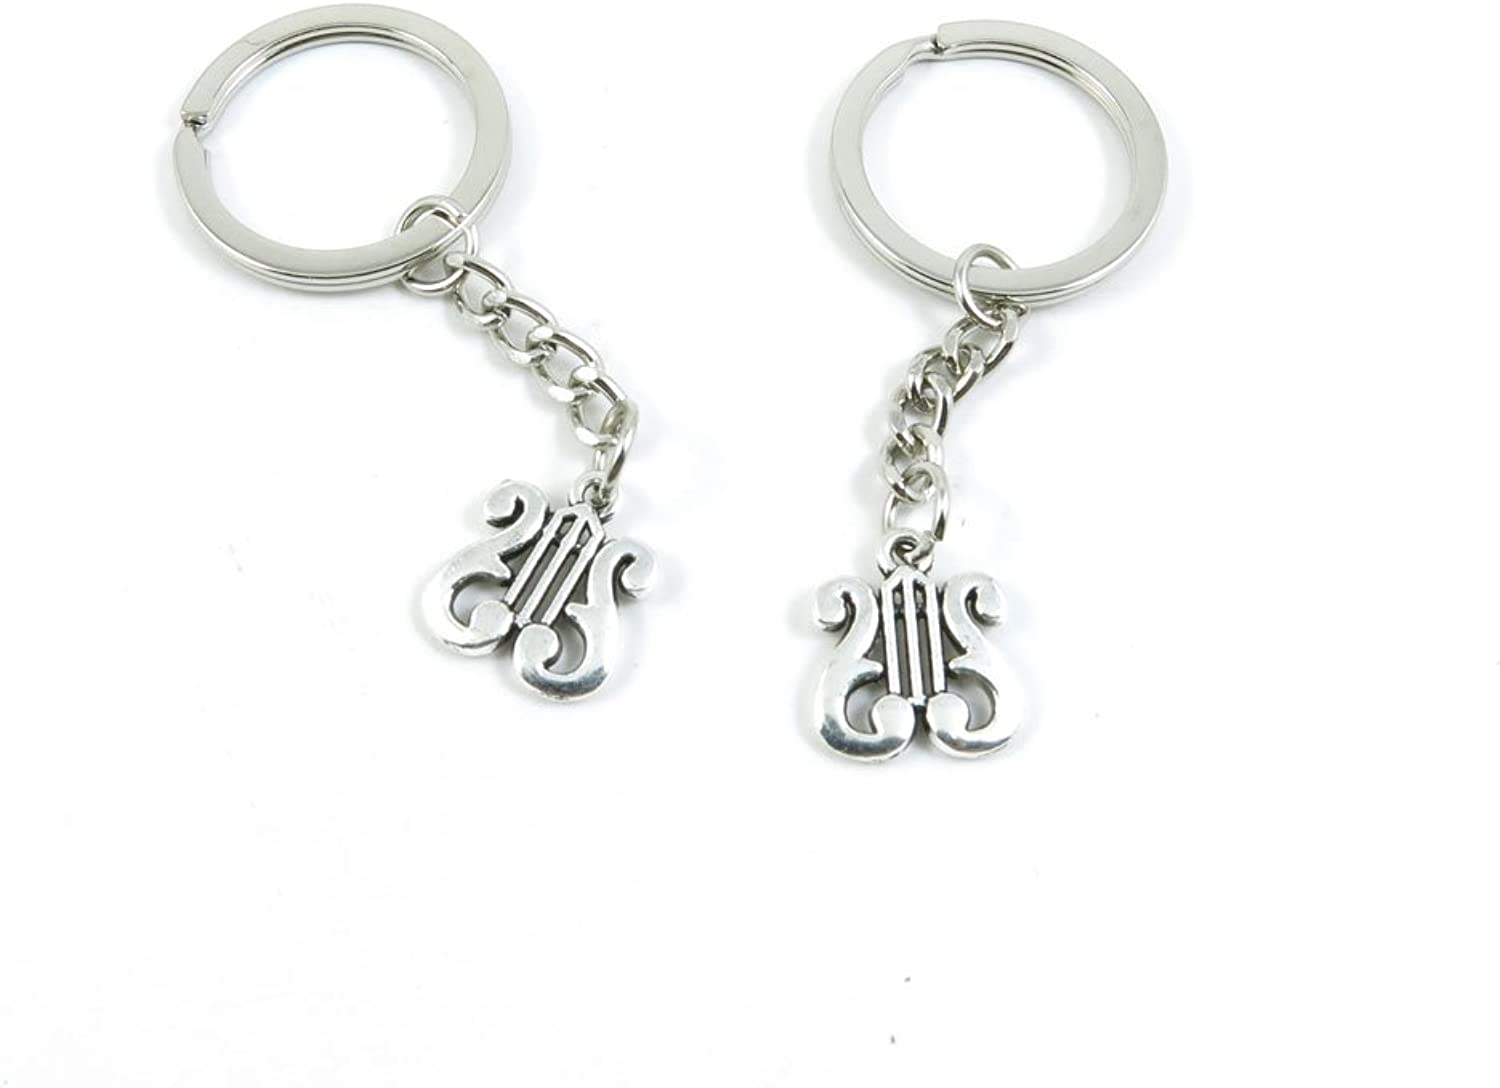 100 Pieces Keychain Keyring Door Car Key Chain Ring Tag Charms Bulk Supply Jewelry Making Clasp Findings B8BM2G Harp